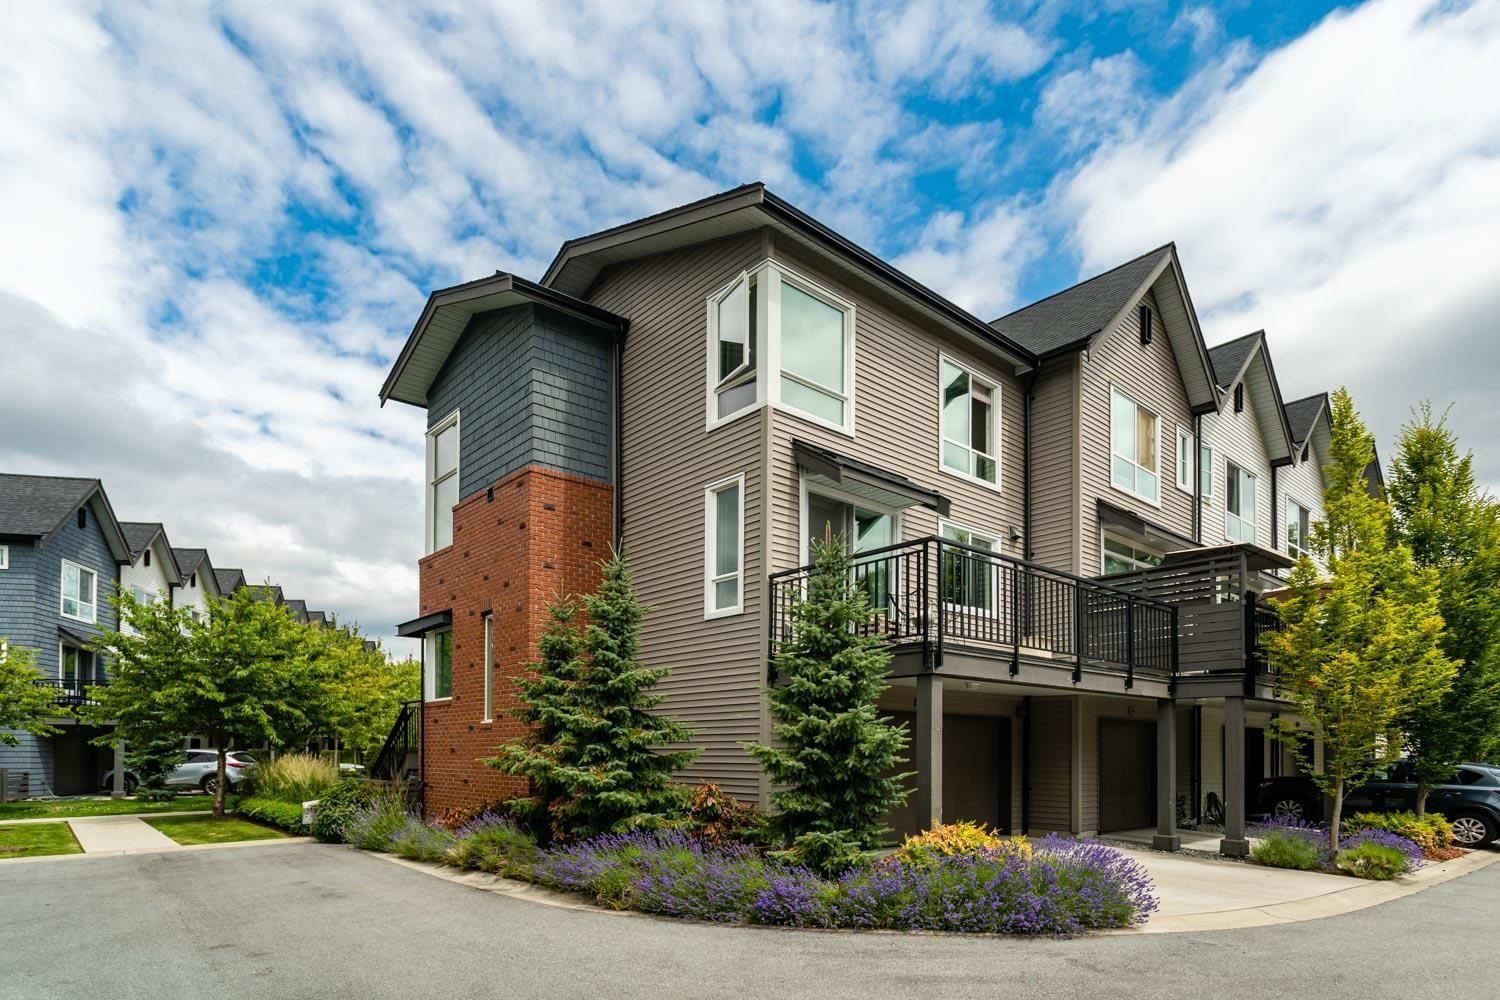 """Main Photo: 49 2358 RANGER Lane in Port Coquitlam: Riverwood Townhouse for sale in """"FREEMONT"""" : MLS®# R2598599"""